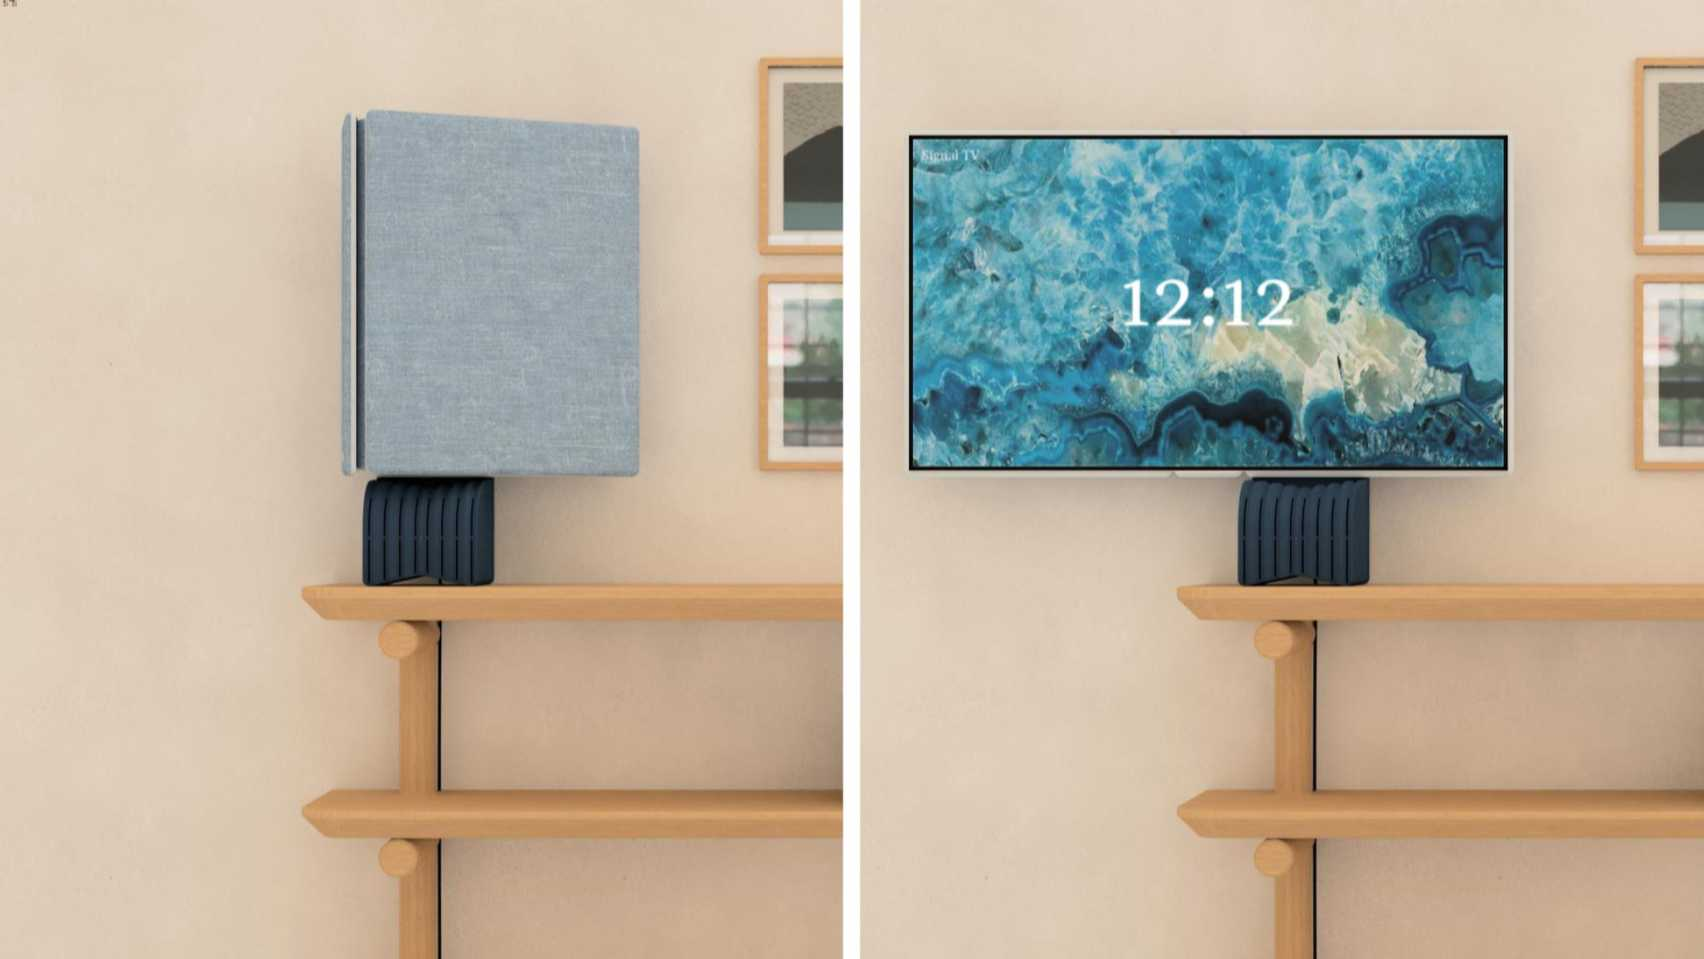 Signal by Jean-Michel Rochette folding TV on the Dezeen and LG Display OLED Go competition shortlist